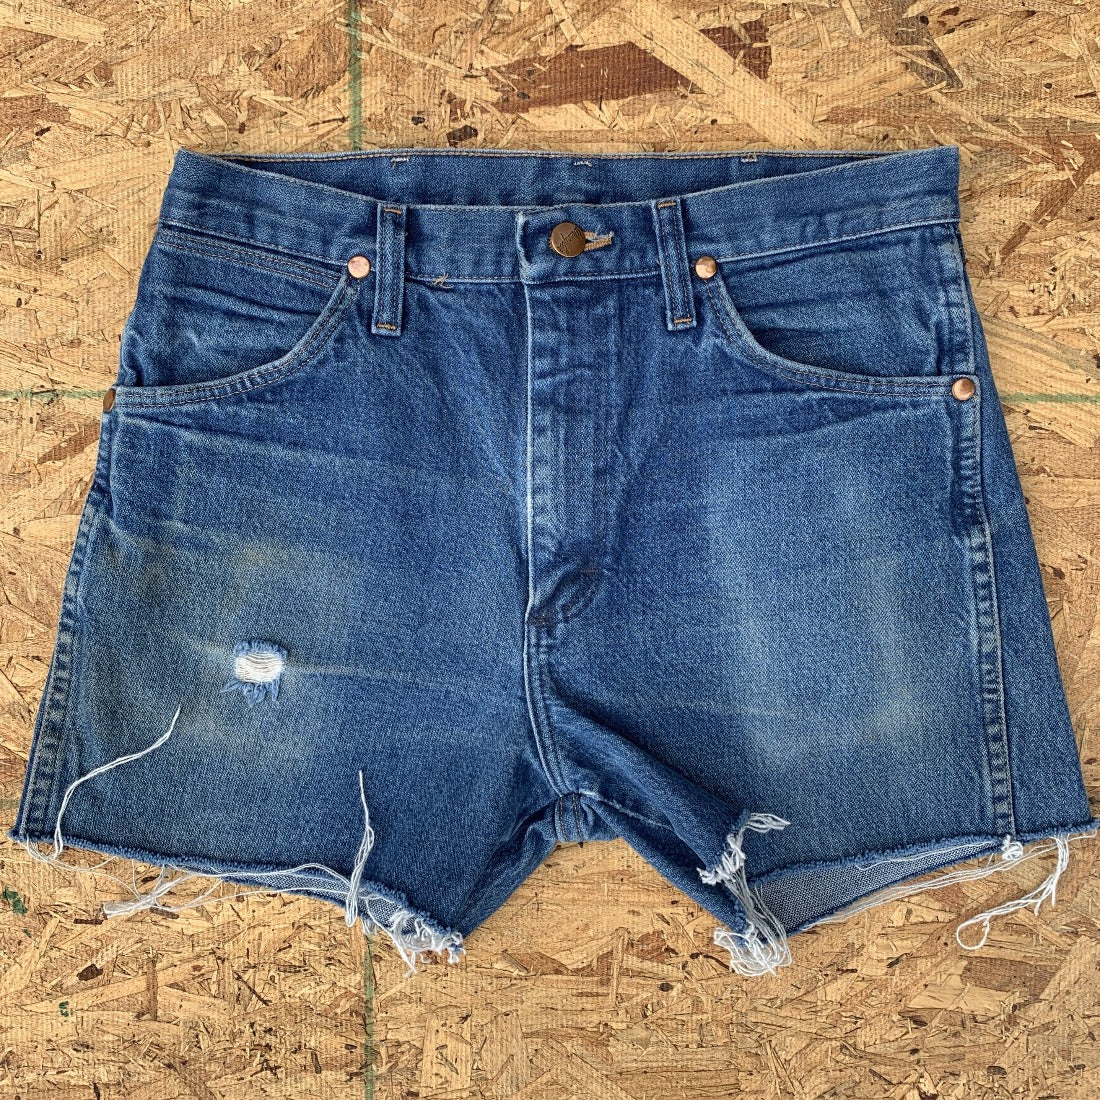 70s Wrangler Medium Wash Blue Denim Cutoff Shorts | 30